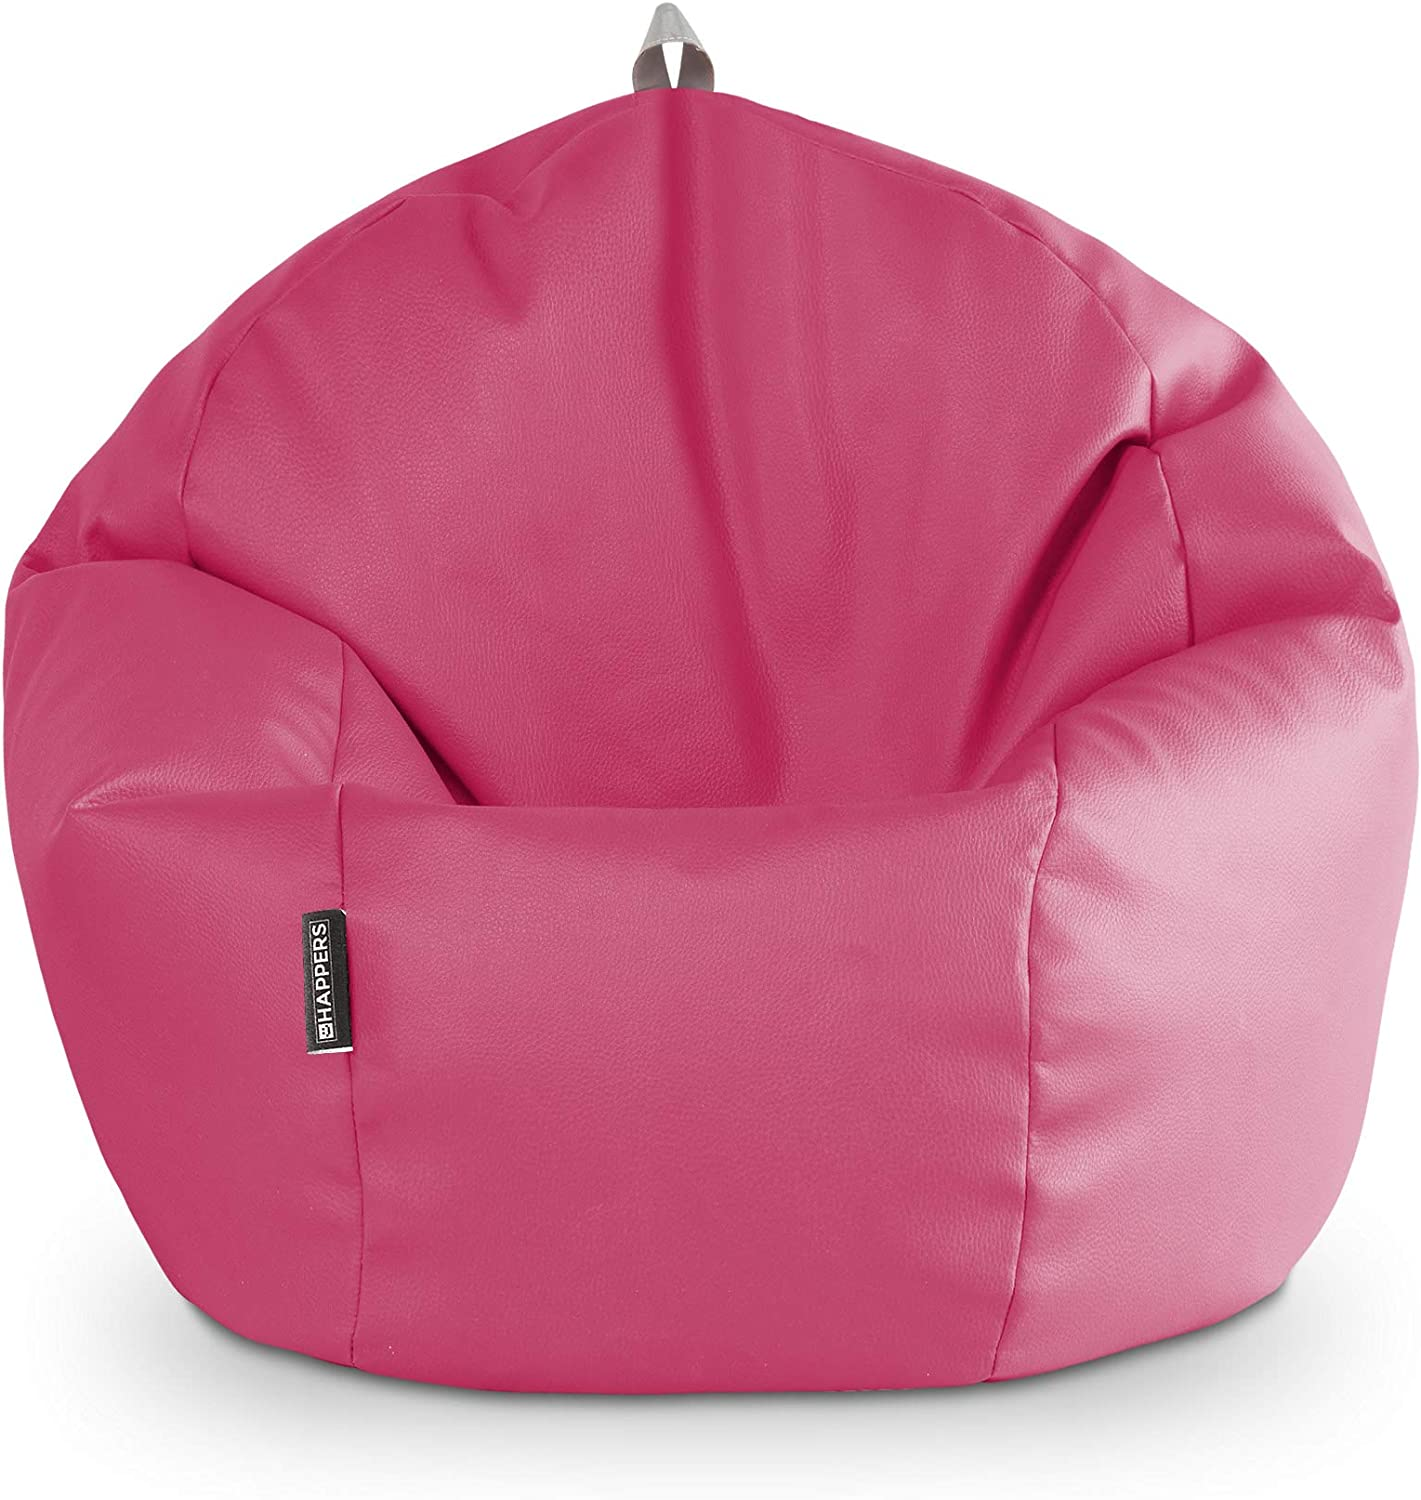 HAPPERS Puff Pelota Polipiel Indoor Fucsia